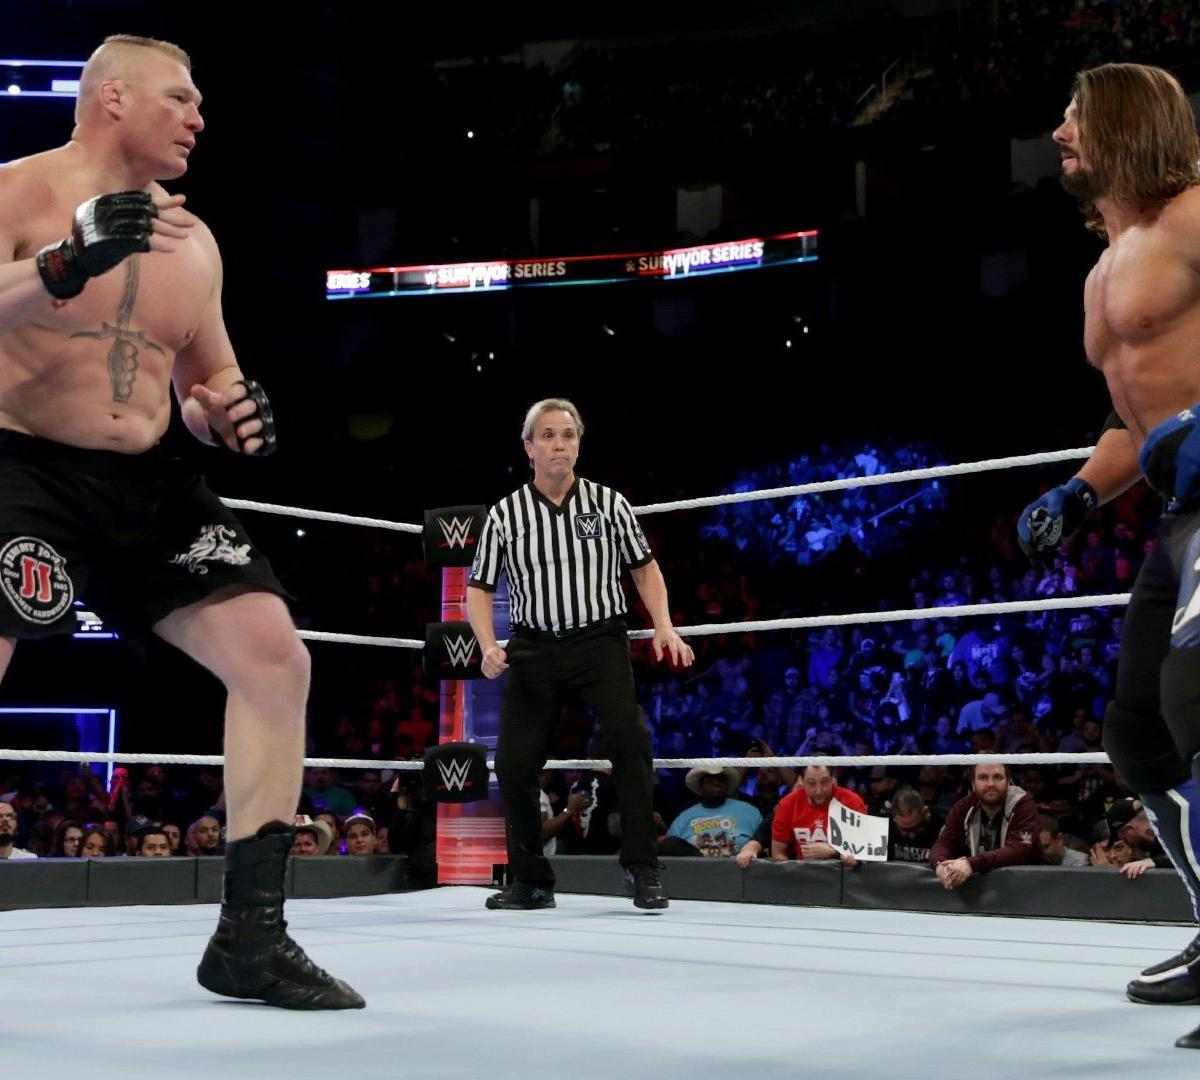 WWE Survivor Series 2017: Full Results, Star Rating For